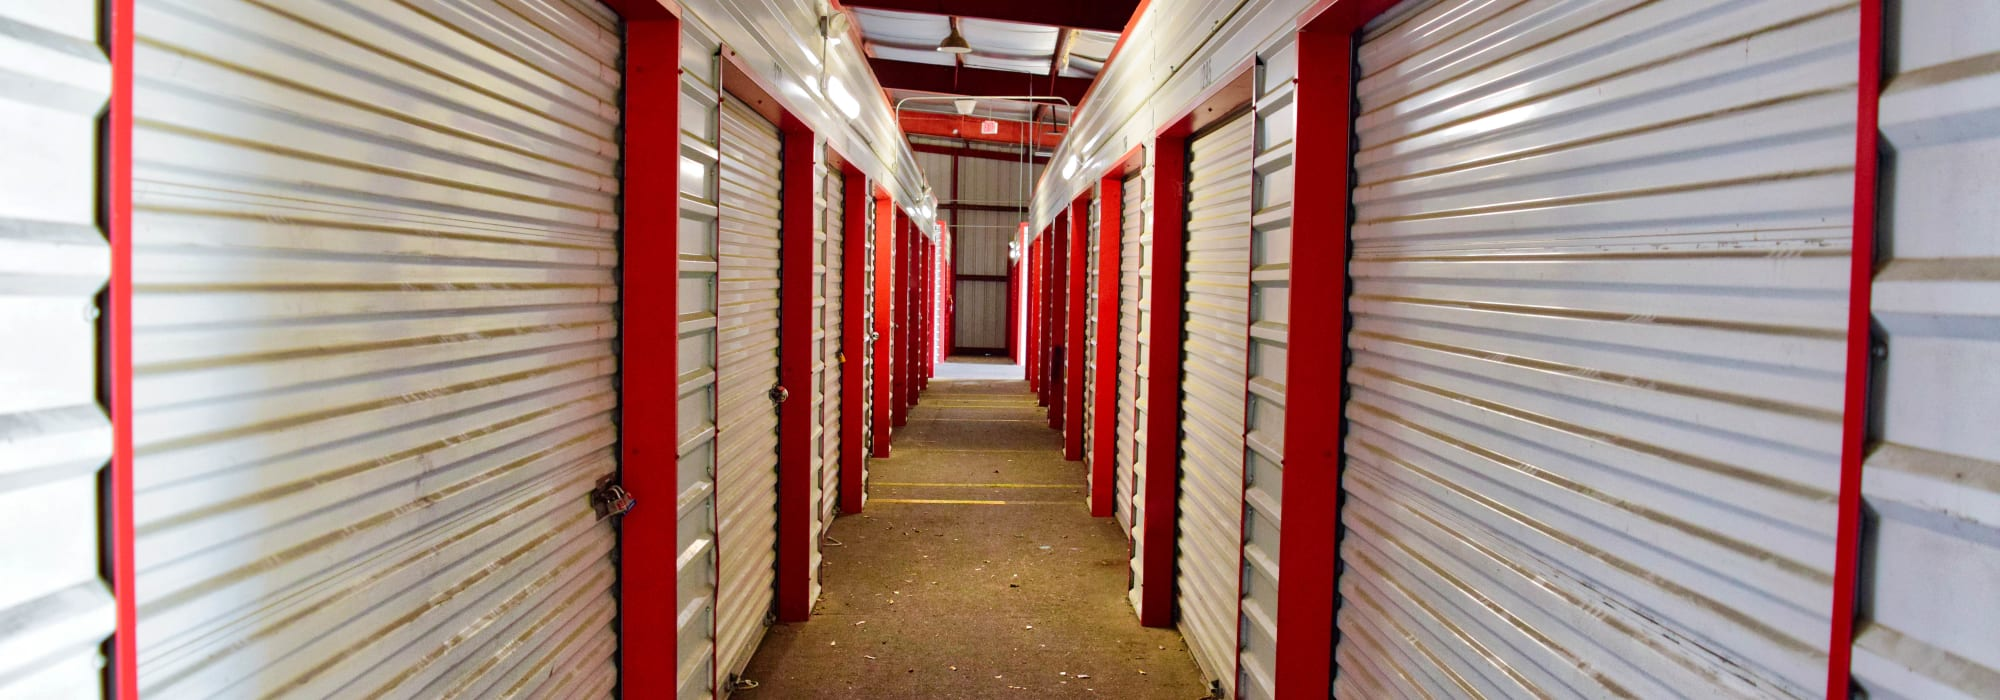 Interior Units at Lockaway Storage in Texarkana, Texas